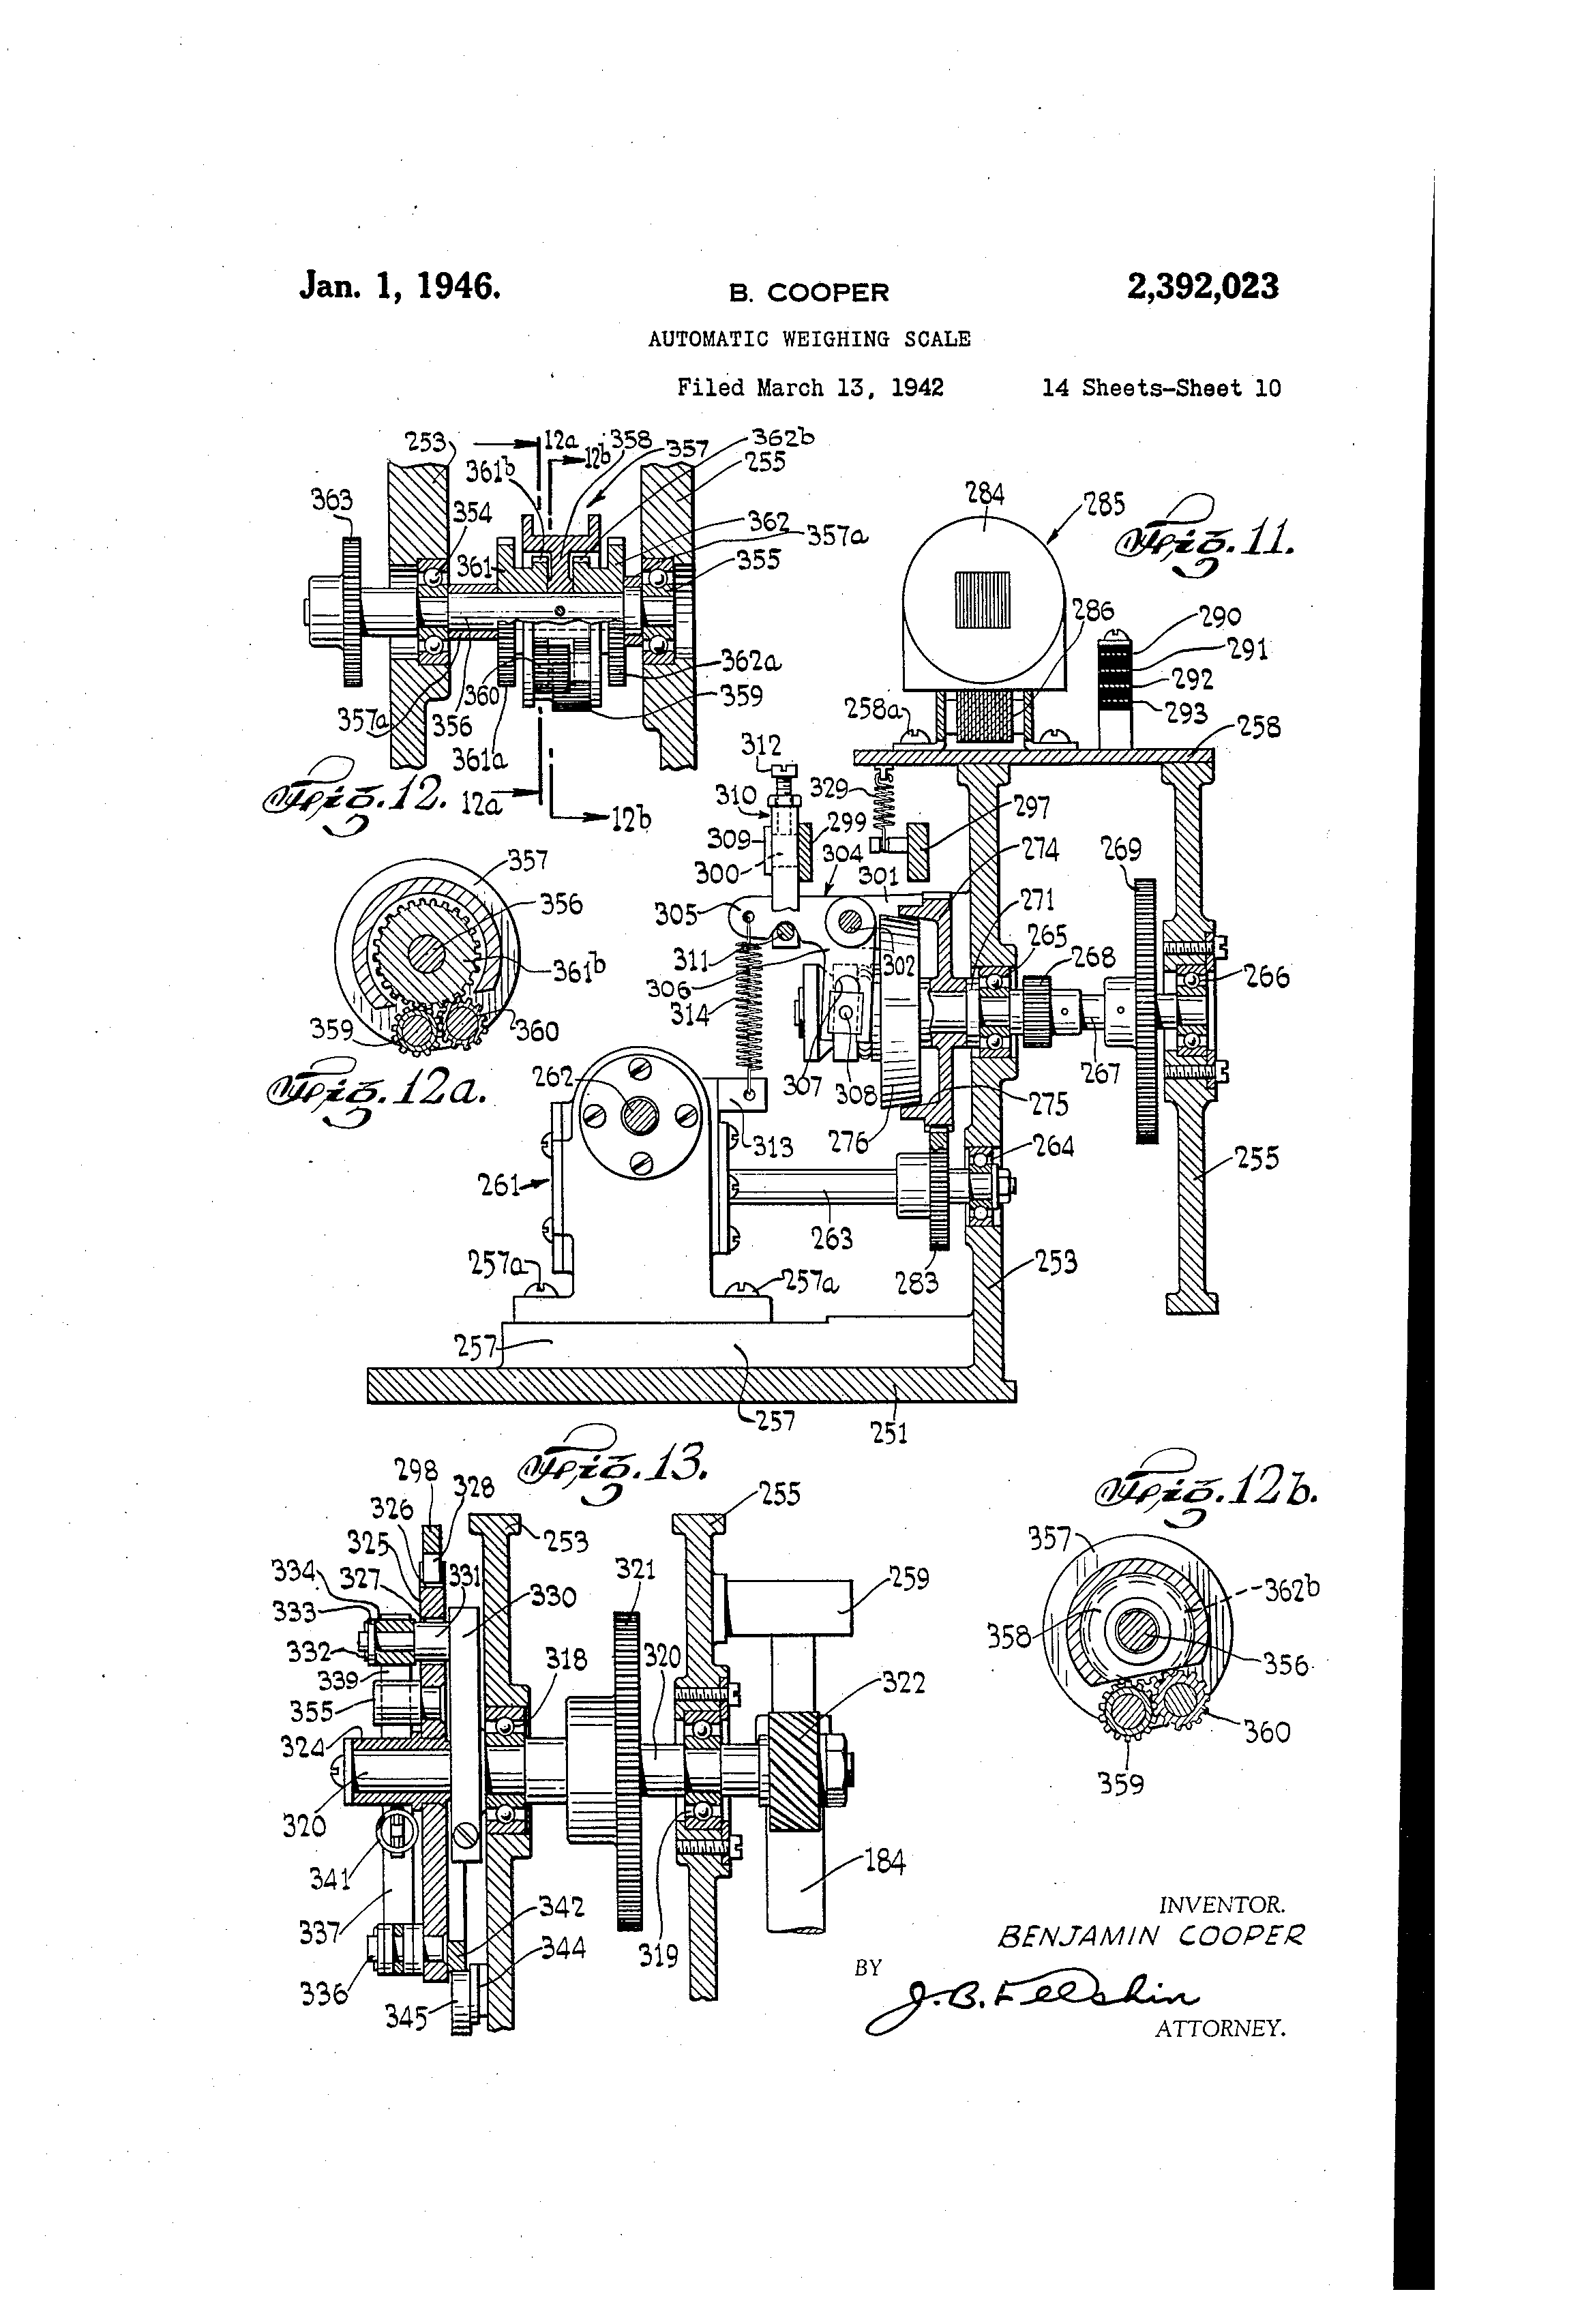 mixer motor wiring diagram mixer image wiring diagram hobart mixer motor wiring diagram diagram of a chevy s 10 engine on mixer motor wiring